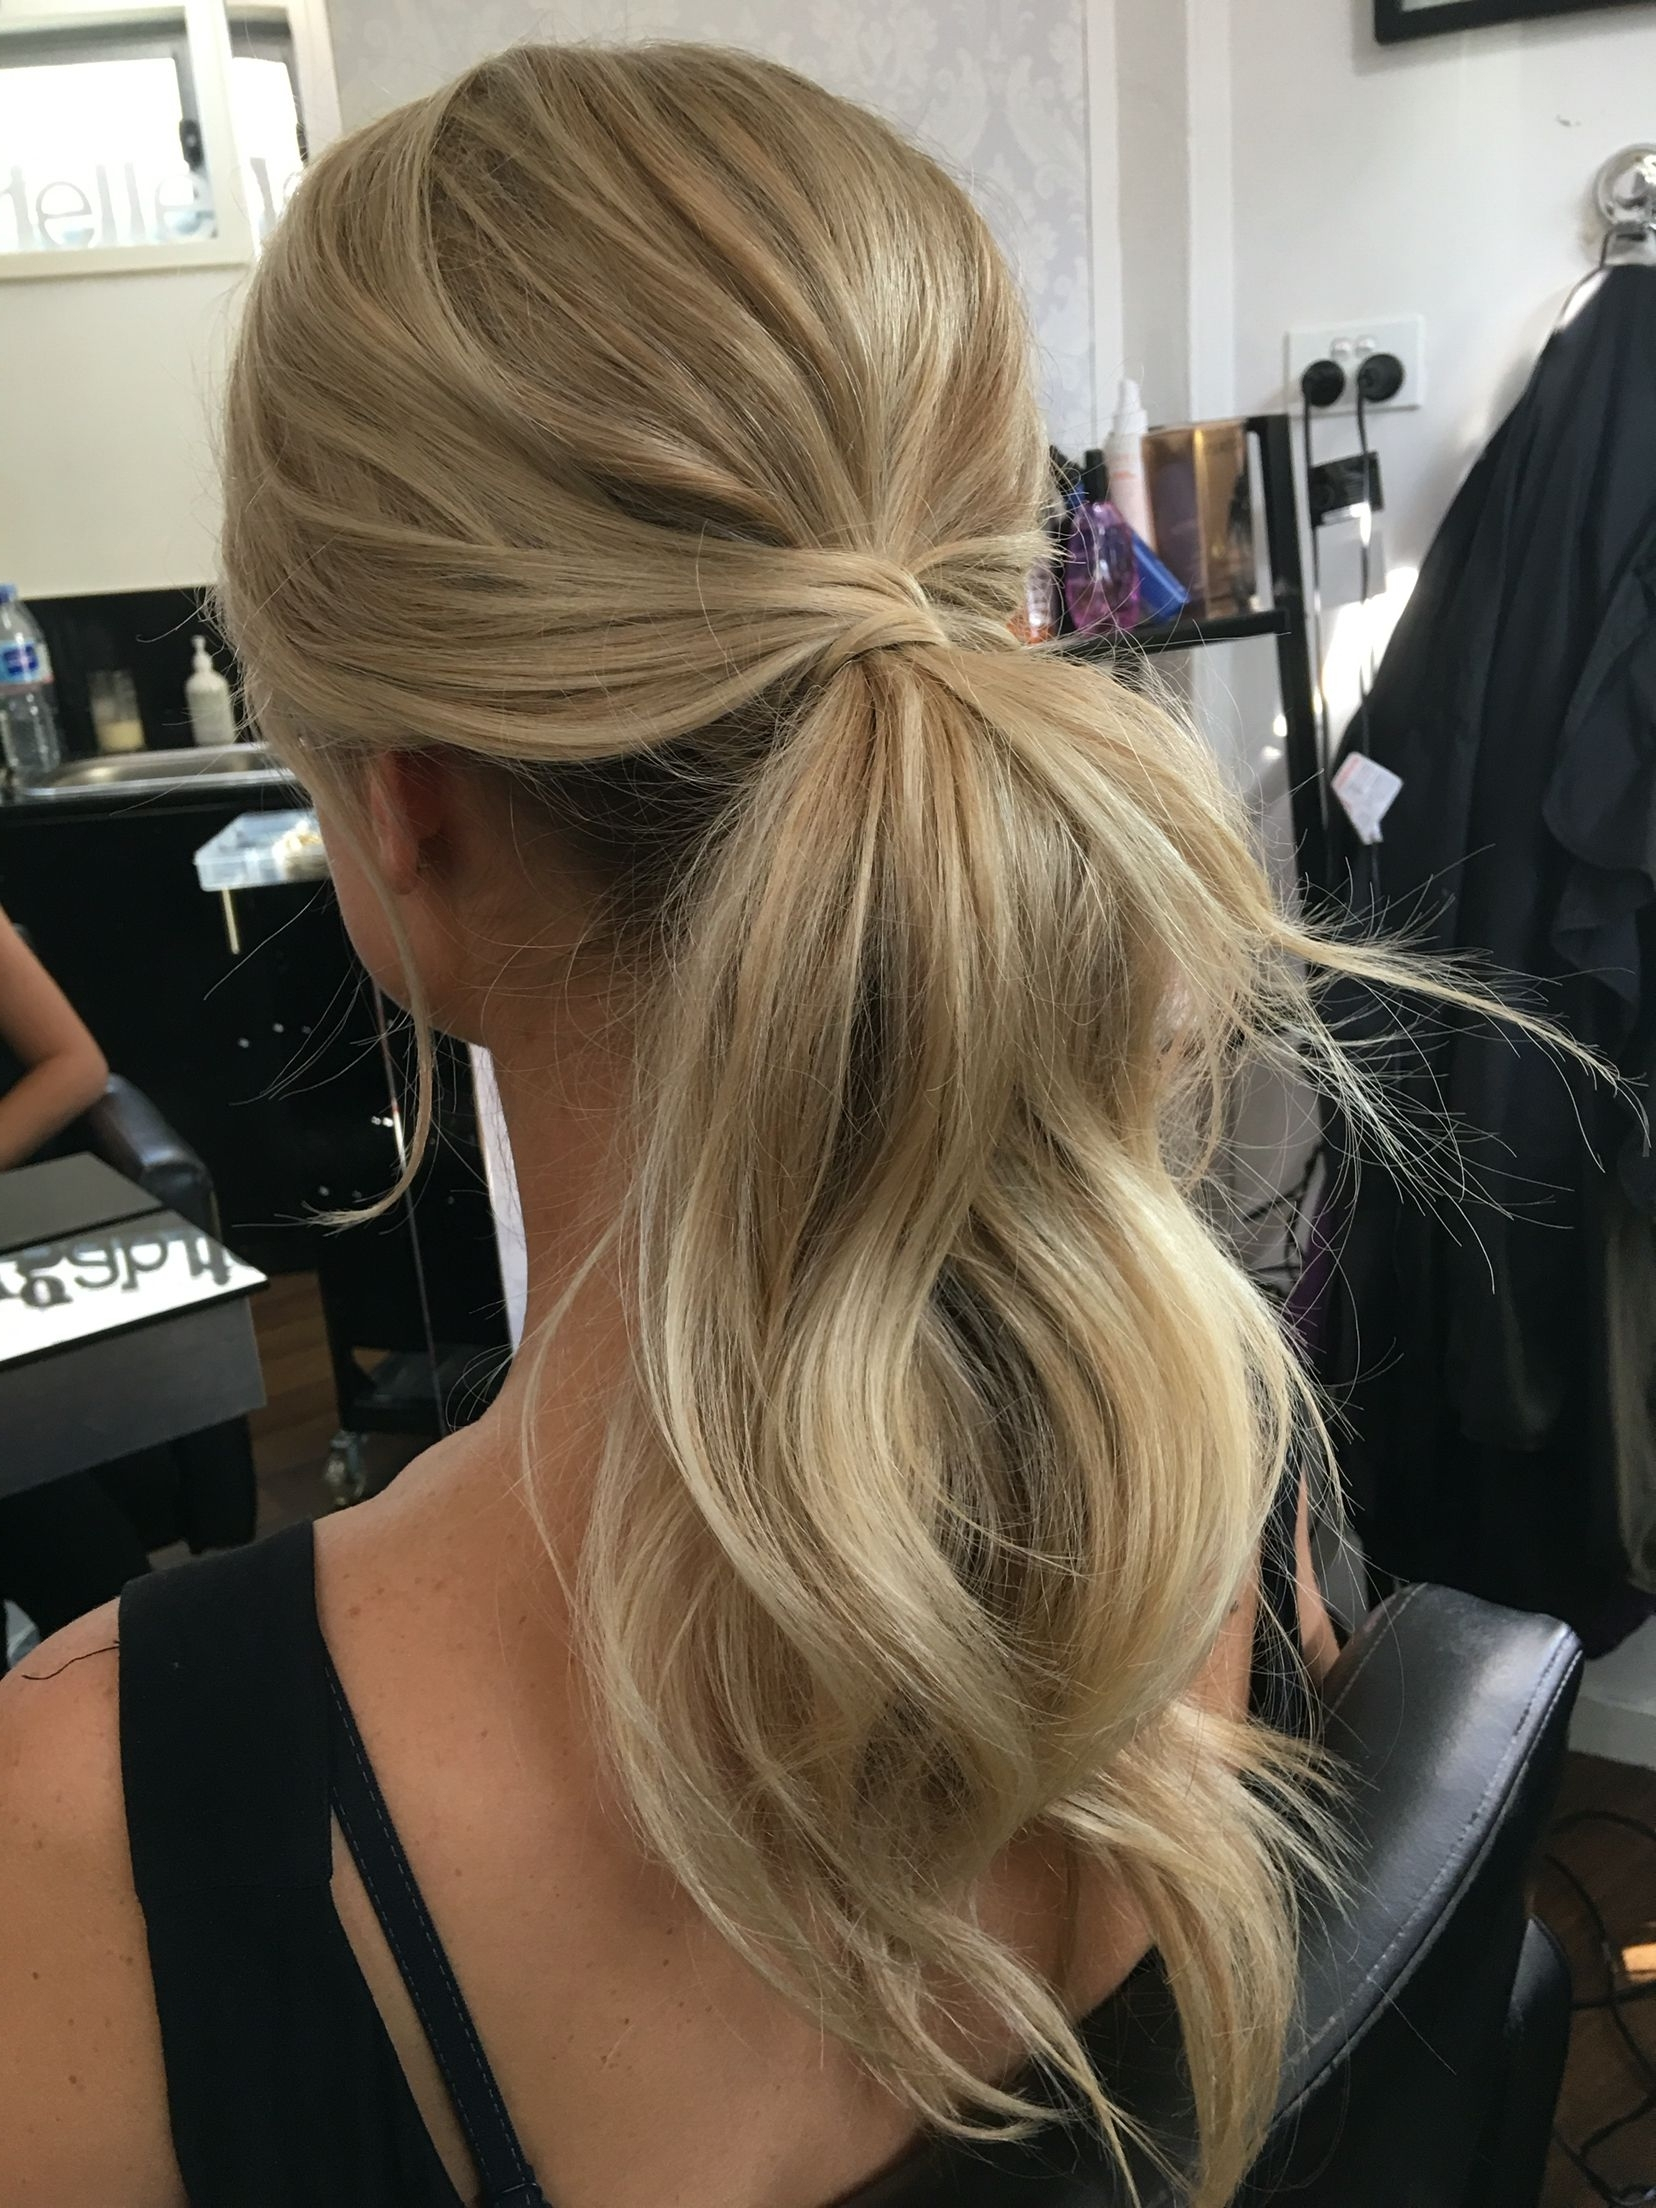 Recent Stylish Low Pony Hairstyles With Bump With Regard To Wedding Hairstyles (Gallery 15 of 20)